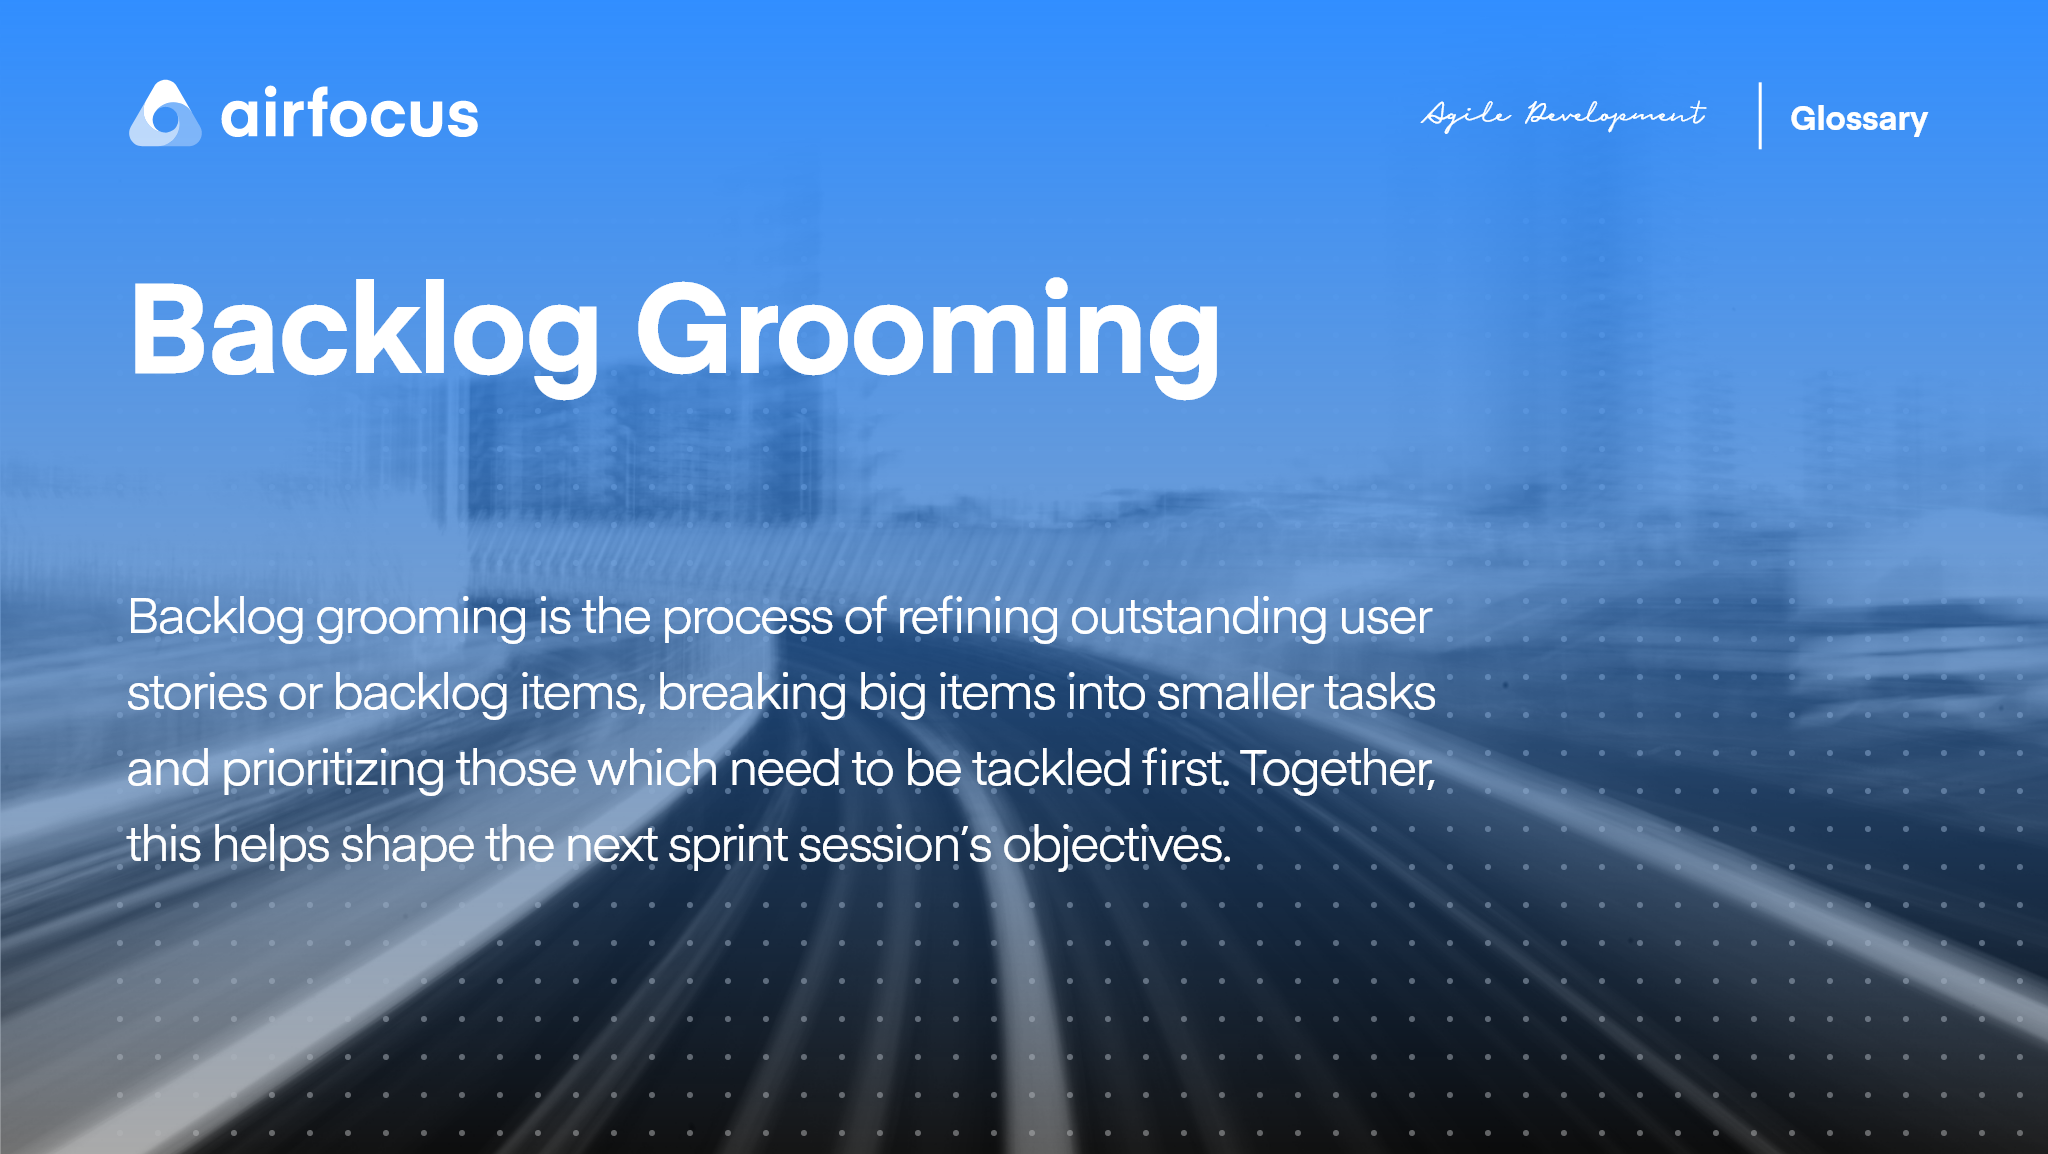 What Is Backlog Grooming